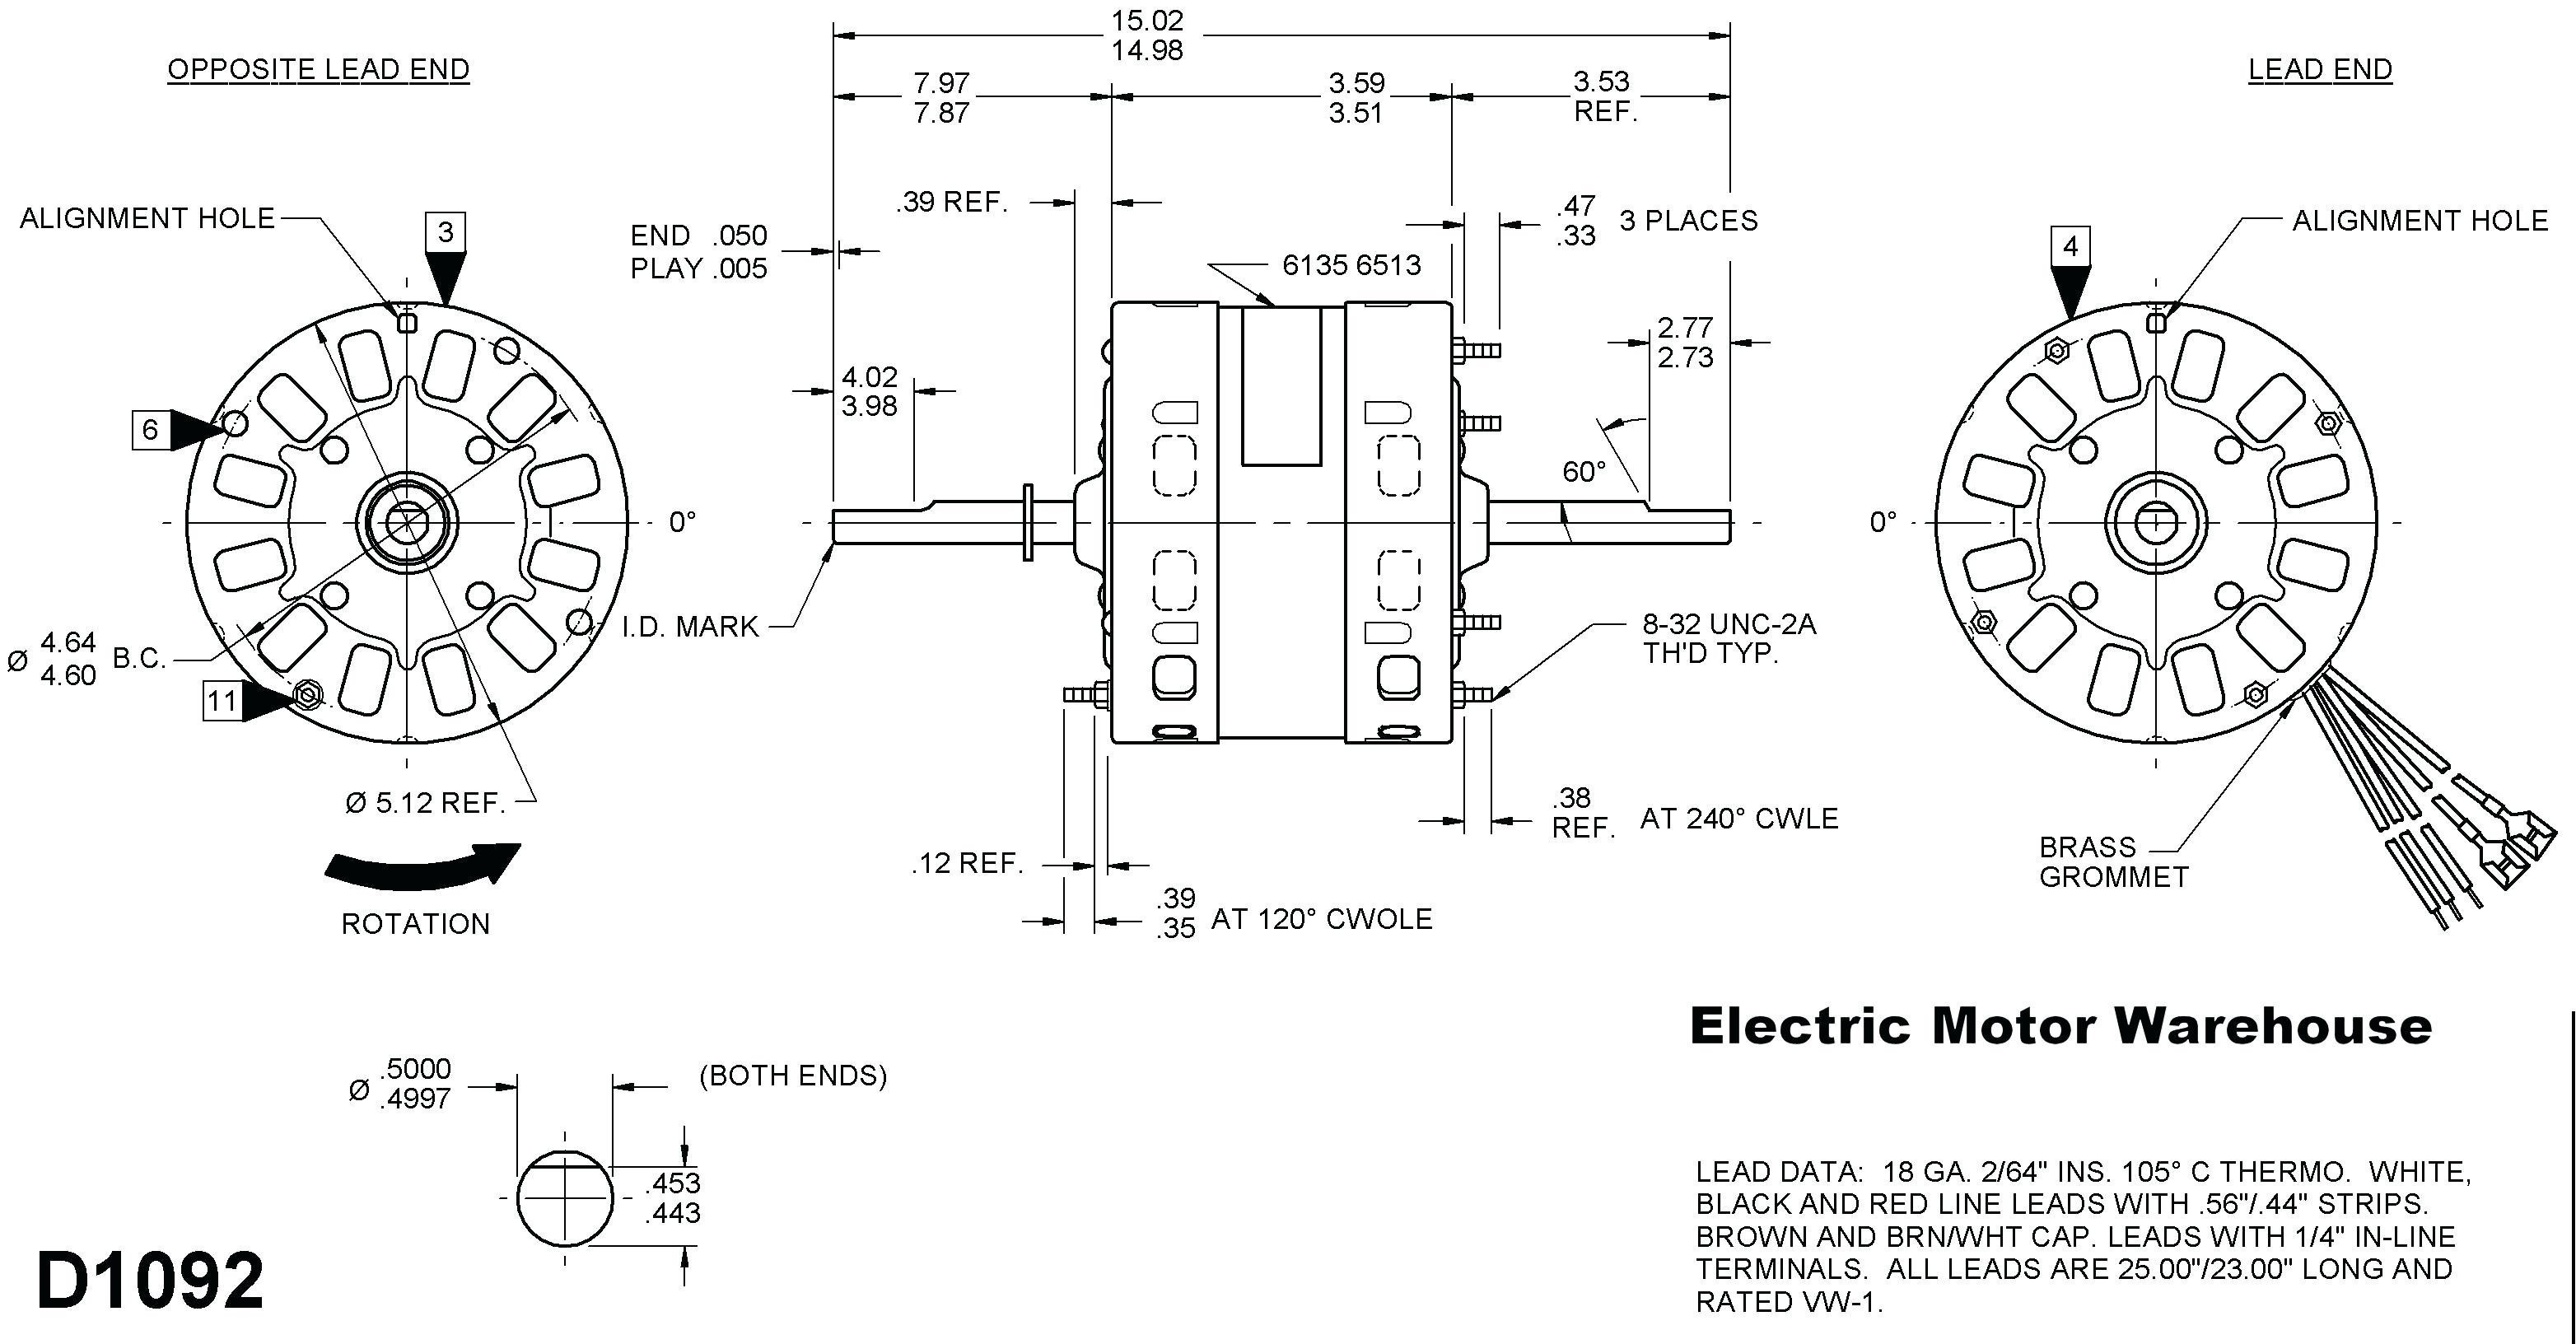 Fasco D721 Wiring Diagram - 1.8.asyaunited.de • on electronics circuits, thermostat circuits, wire circuits, motor circuits, electrical circuits, building circuits, three circuits, power circuits, control circuits, computer circuits, audio circuits, inverter circuits, battery circuits, coil circuits, lighting circuits, relay circuits,